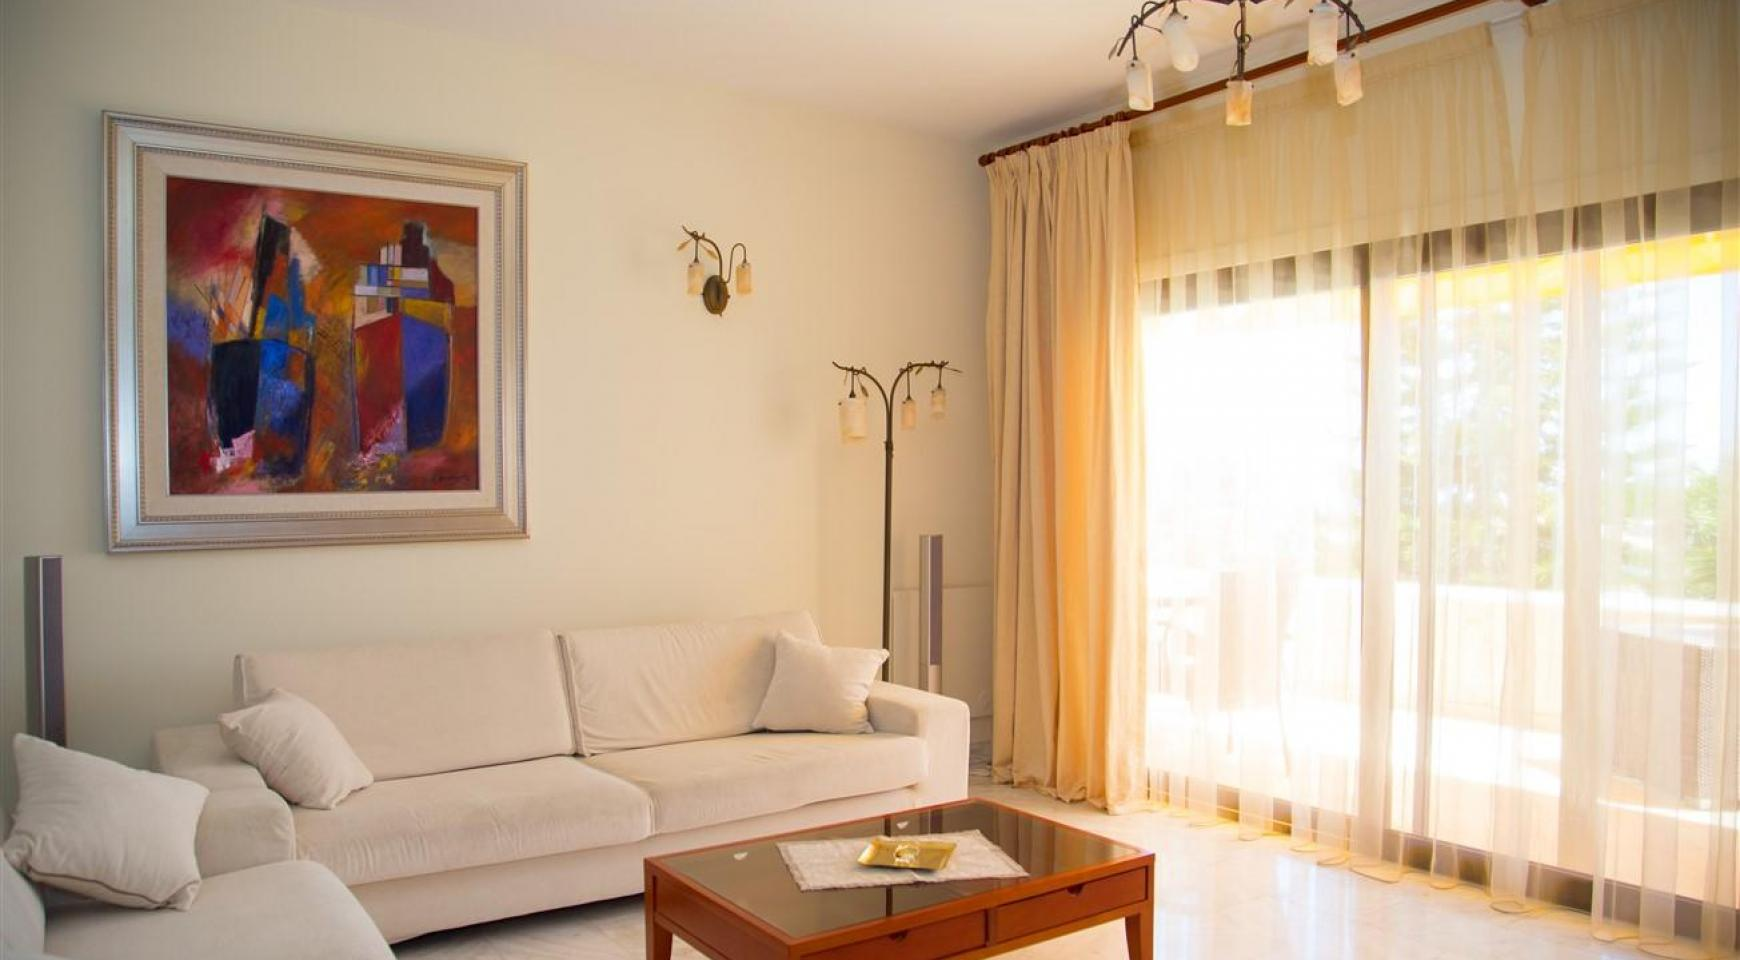 3 Bedroom Apartment in Thera Complex by the Sea - 15